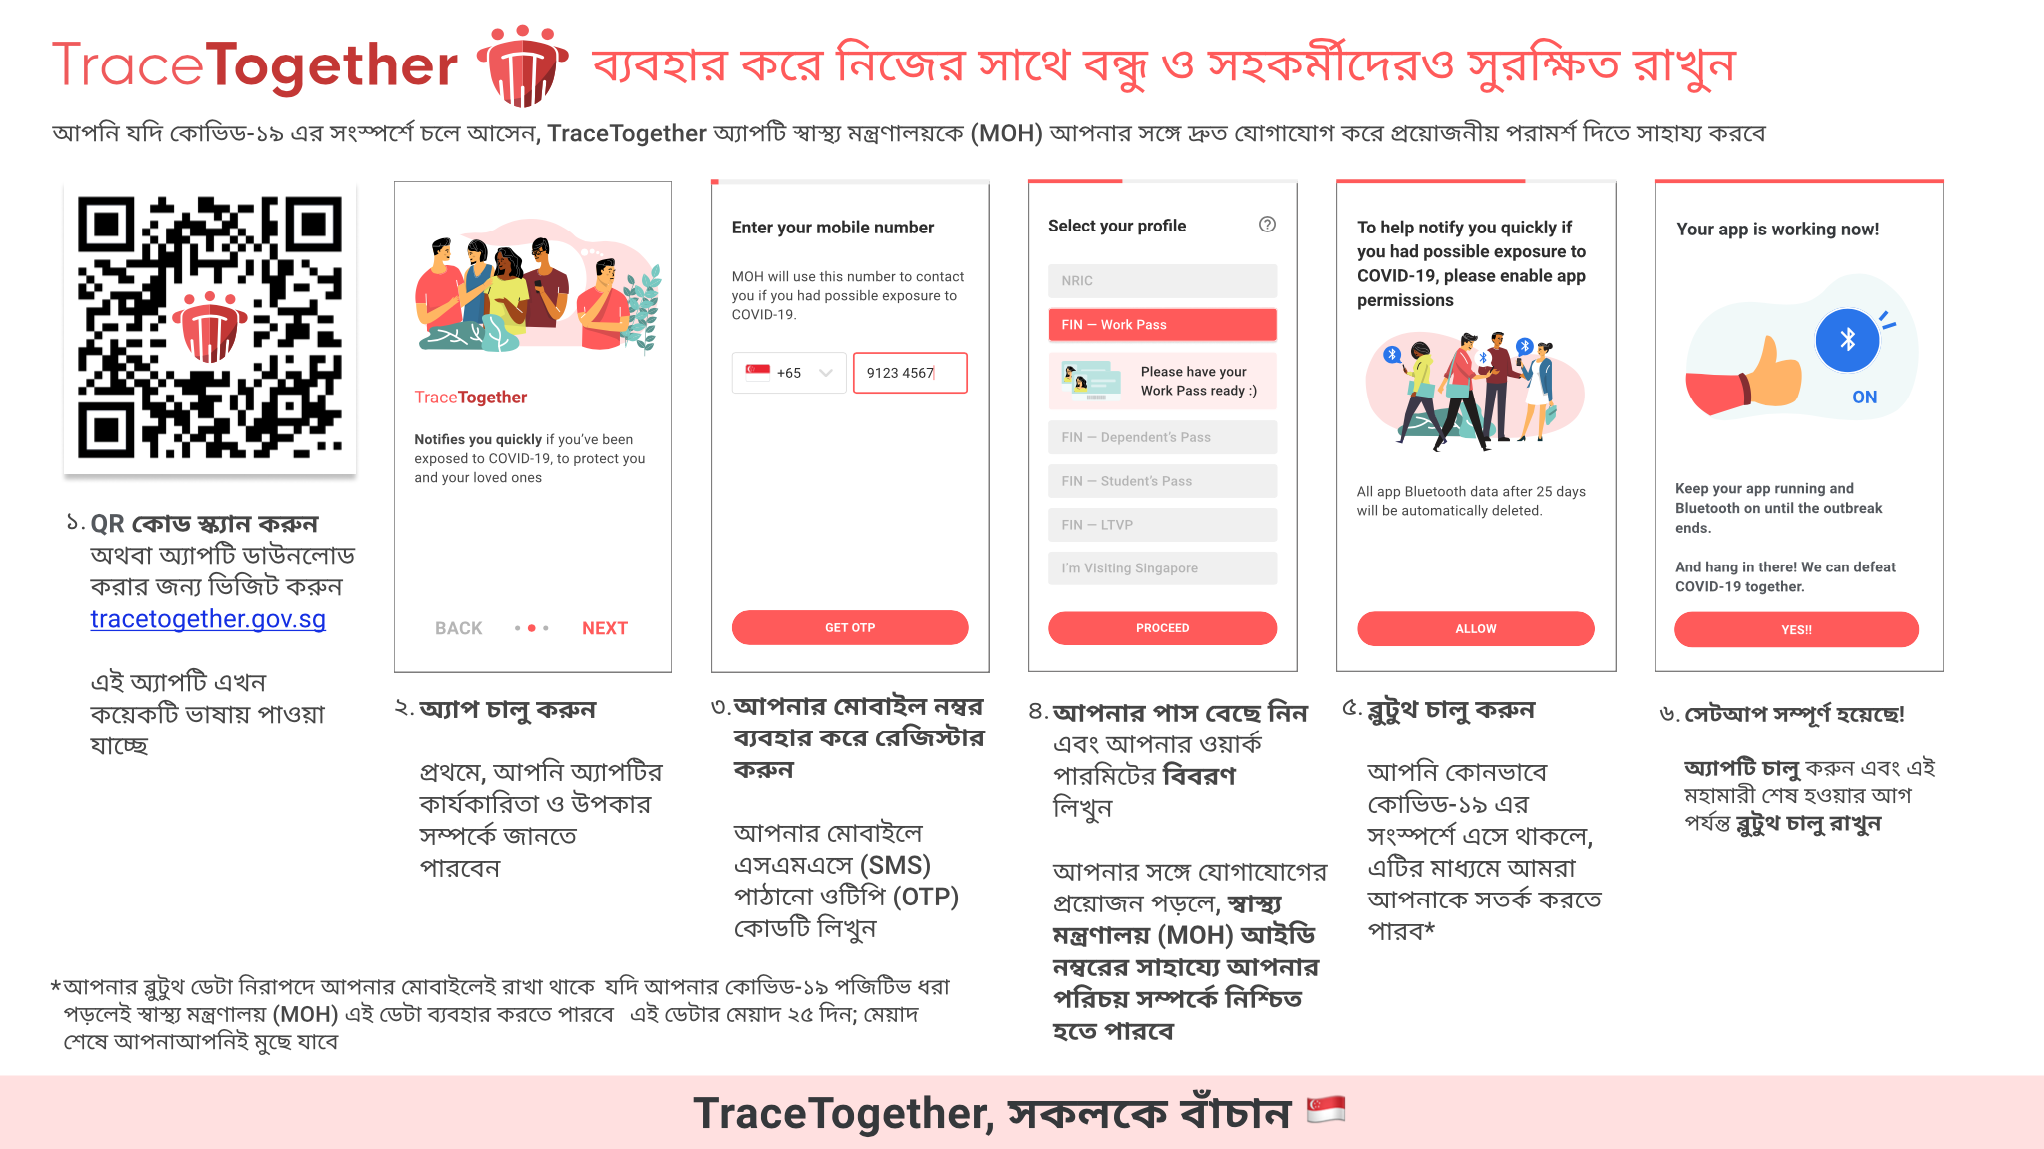 TTv2_Onboarding_Guide_for_FW__Bengali__Updated_7_Jan_2021_.png